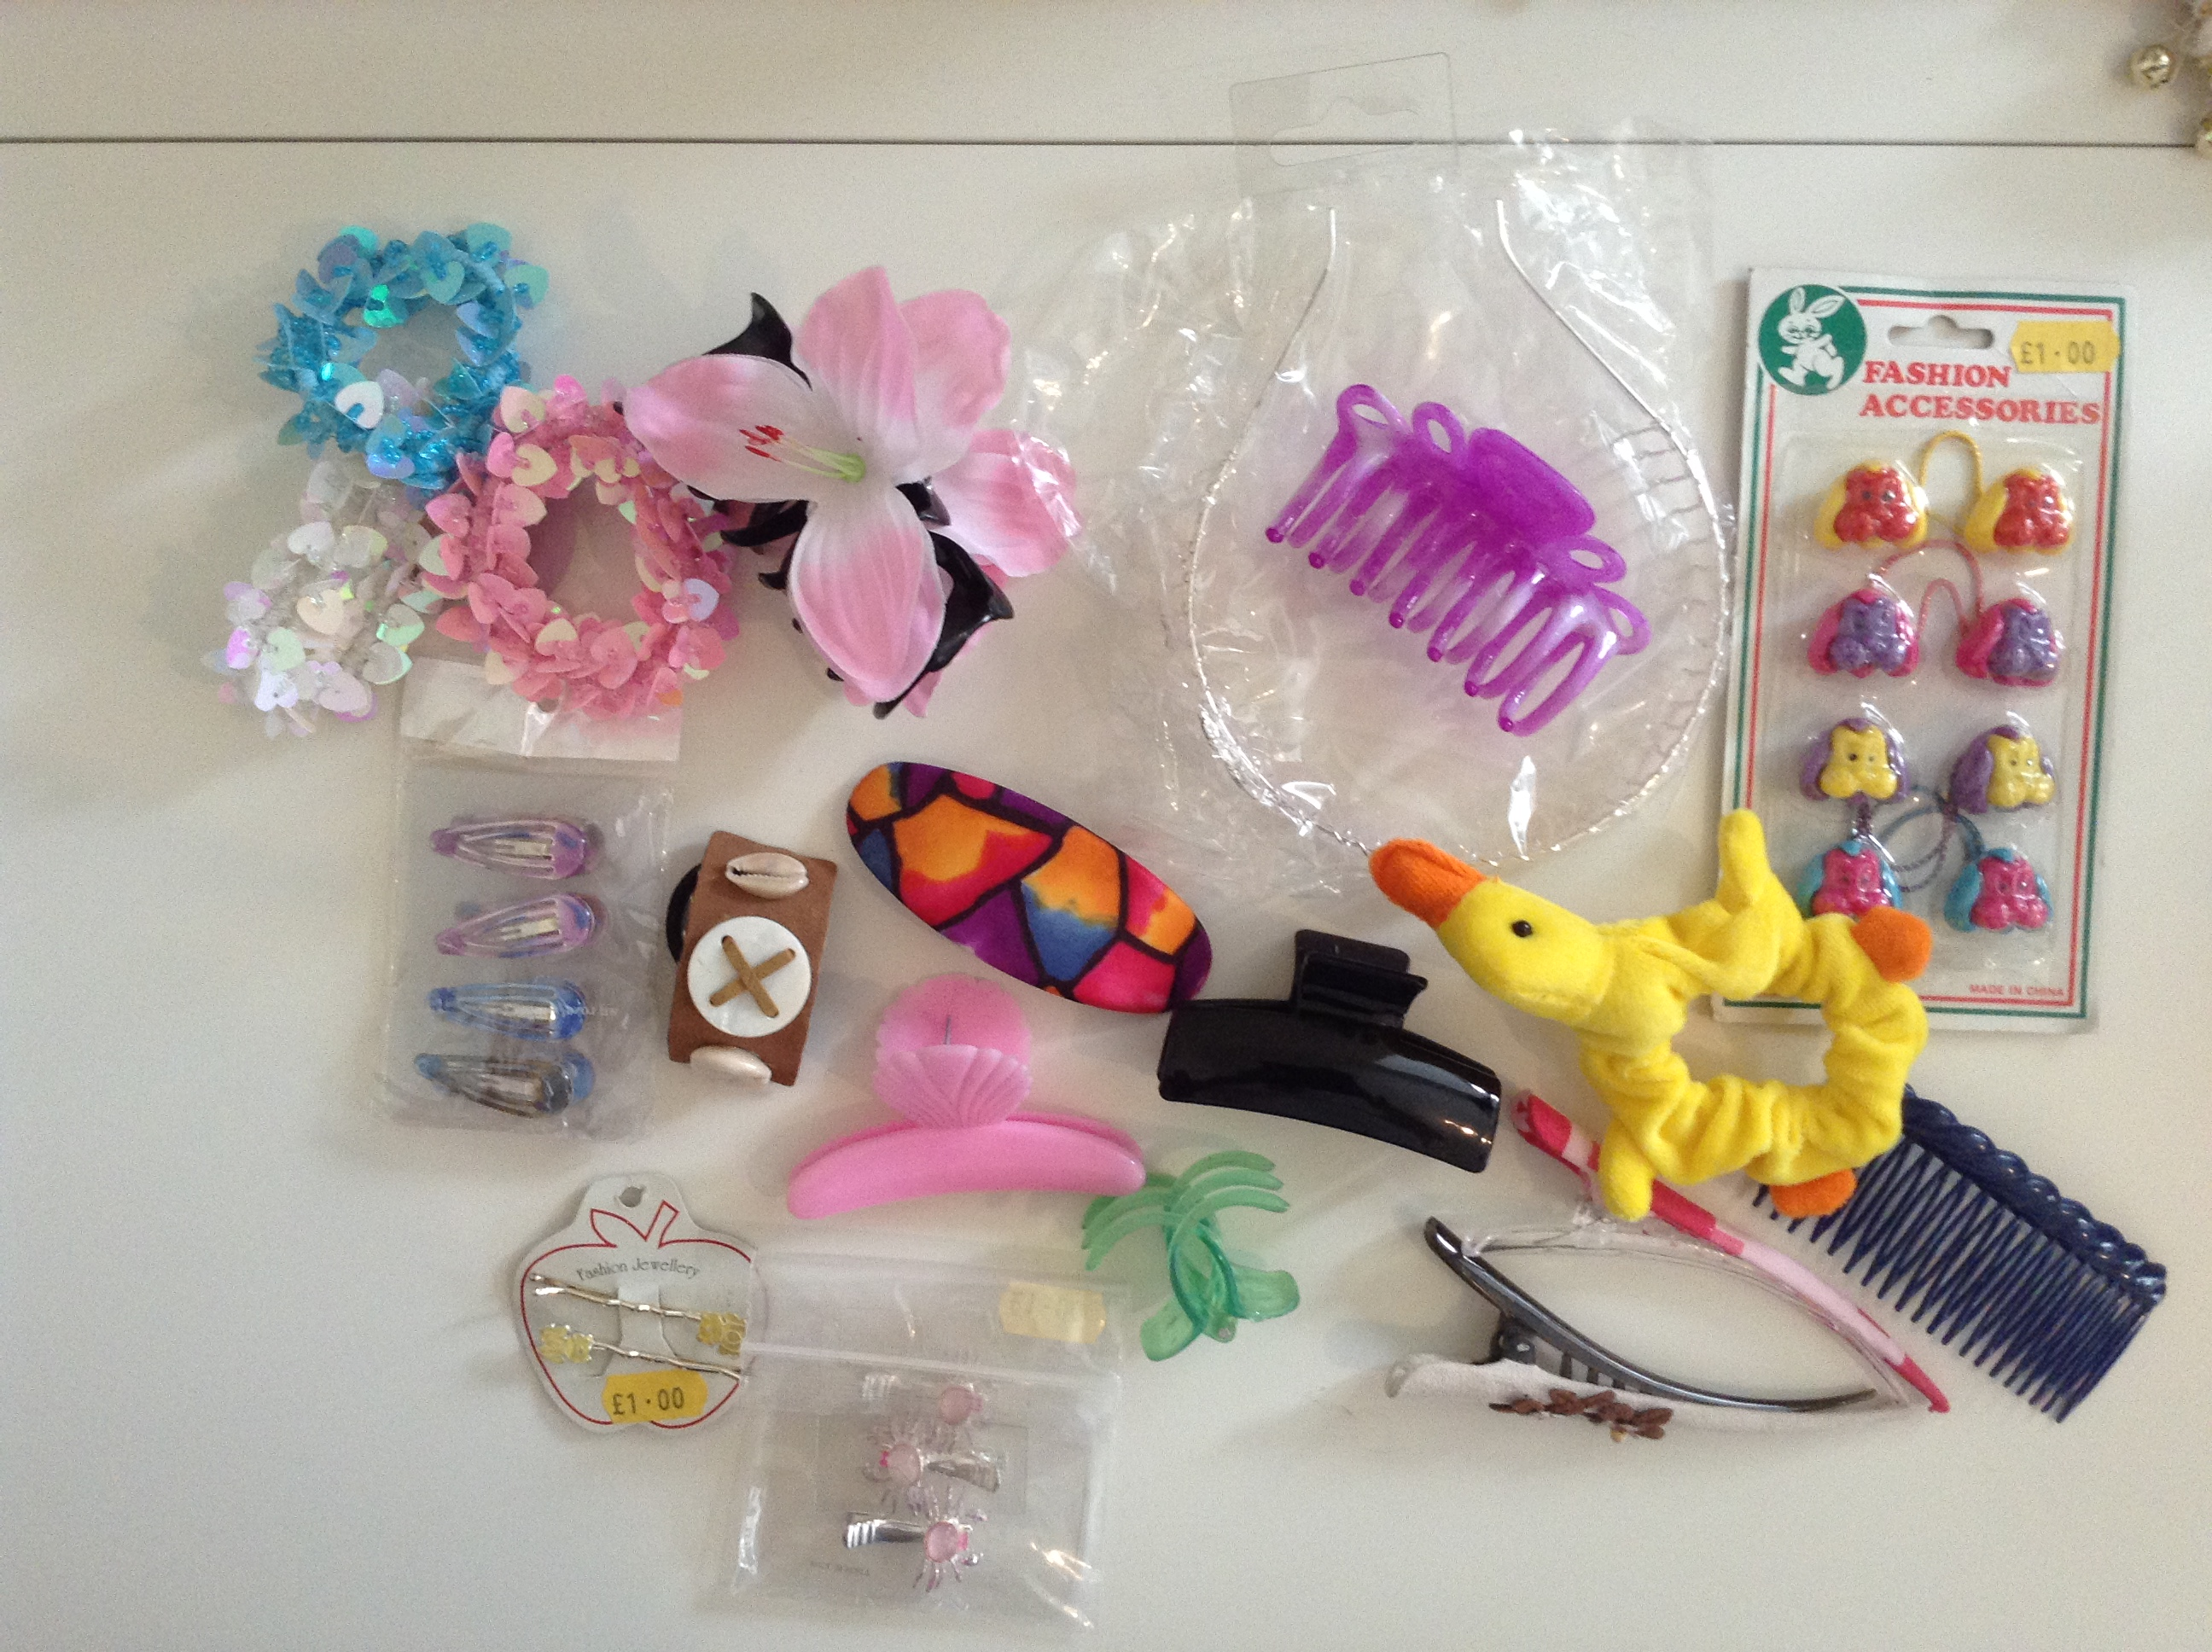 Girls hair accessories for parties, car boot sales, markets or gifts. Minimum of 150 items.